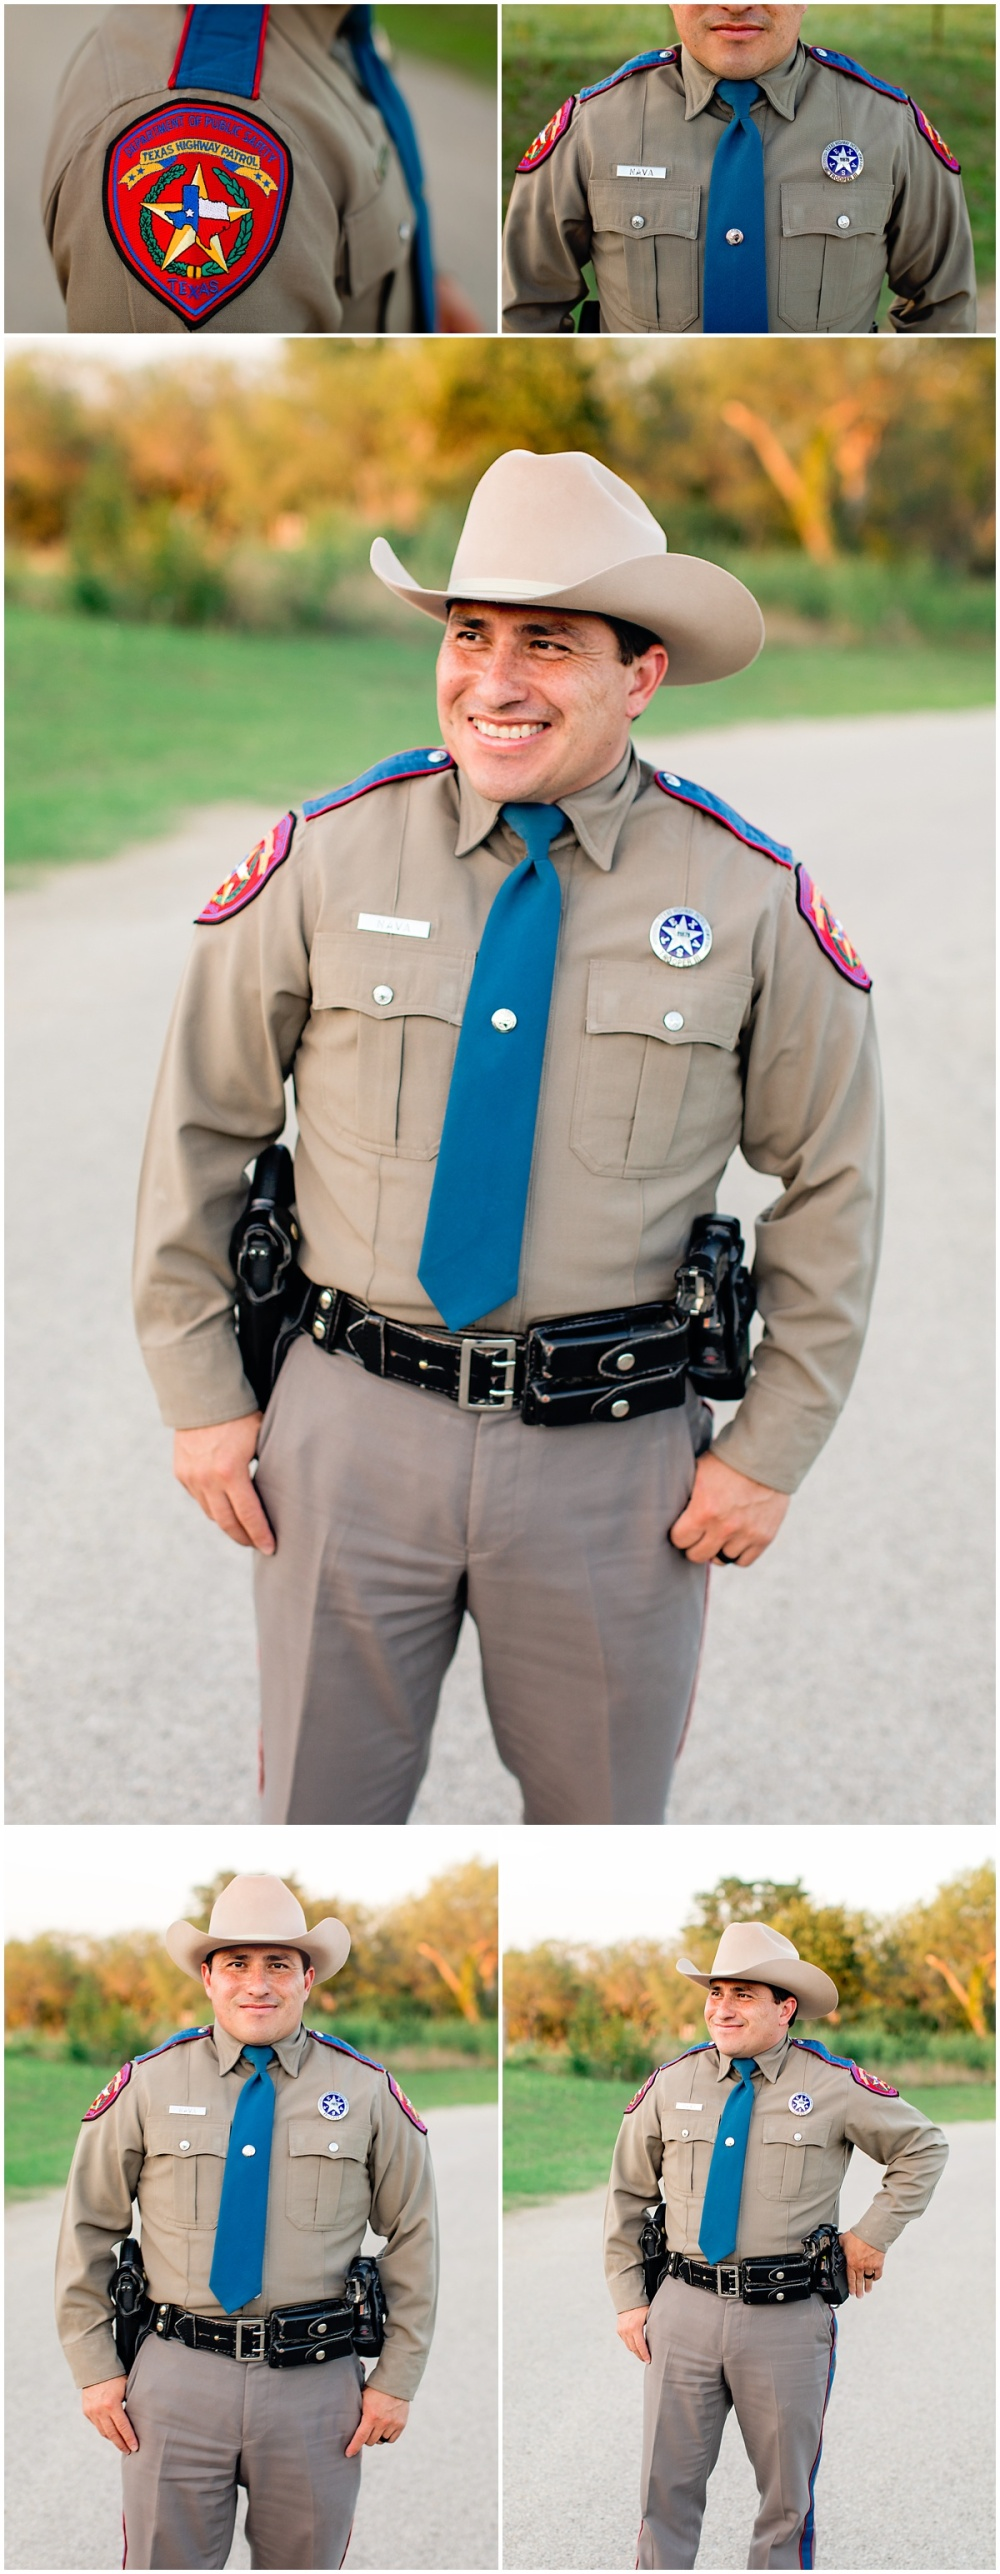 Portraits-State-Trooper-Photos-San-Antonio-Hill-Country-Texas-Carly-Barton-Photography_0007.jpg